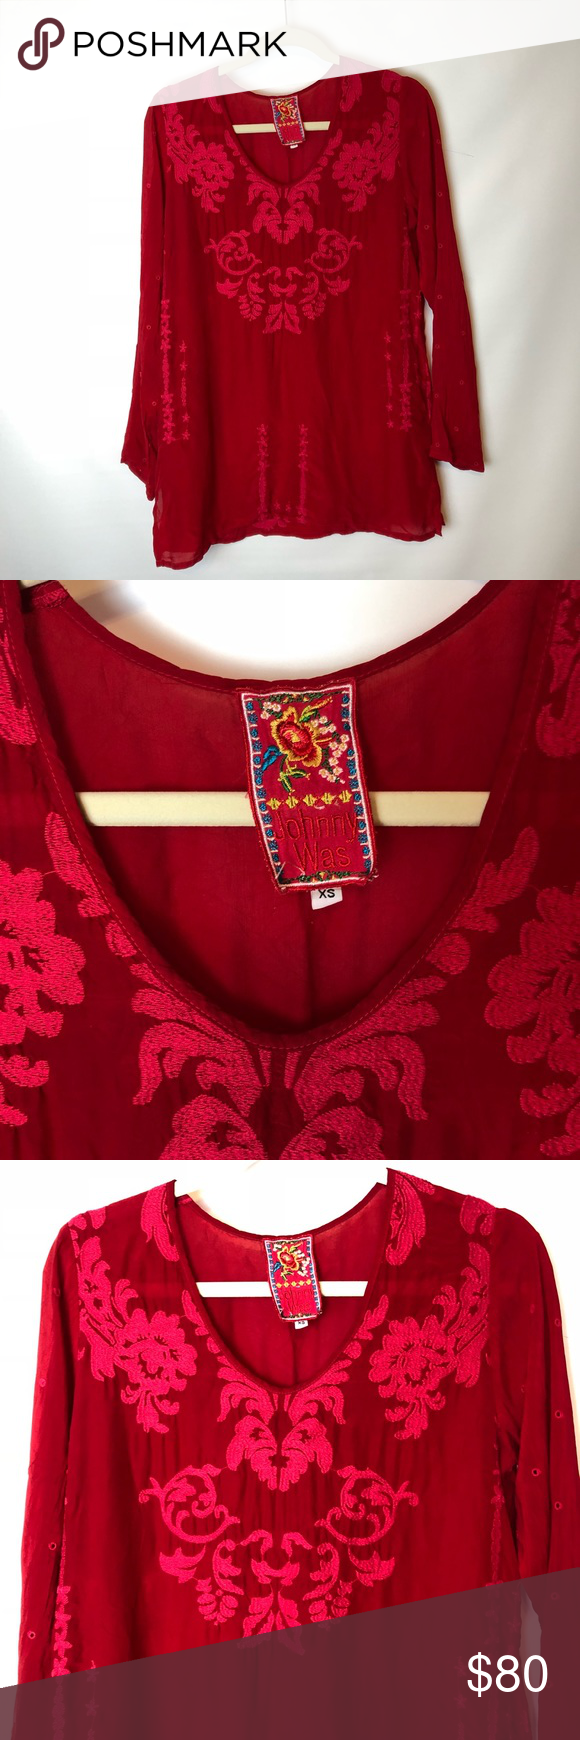 dc5e1c2fa65da Johnny Was red embroidered tunic top size xs Johnny Was red tunic top size  xs. Beautiful floral embroidery detail. Great for a 4th of July look with  white ...